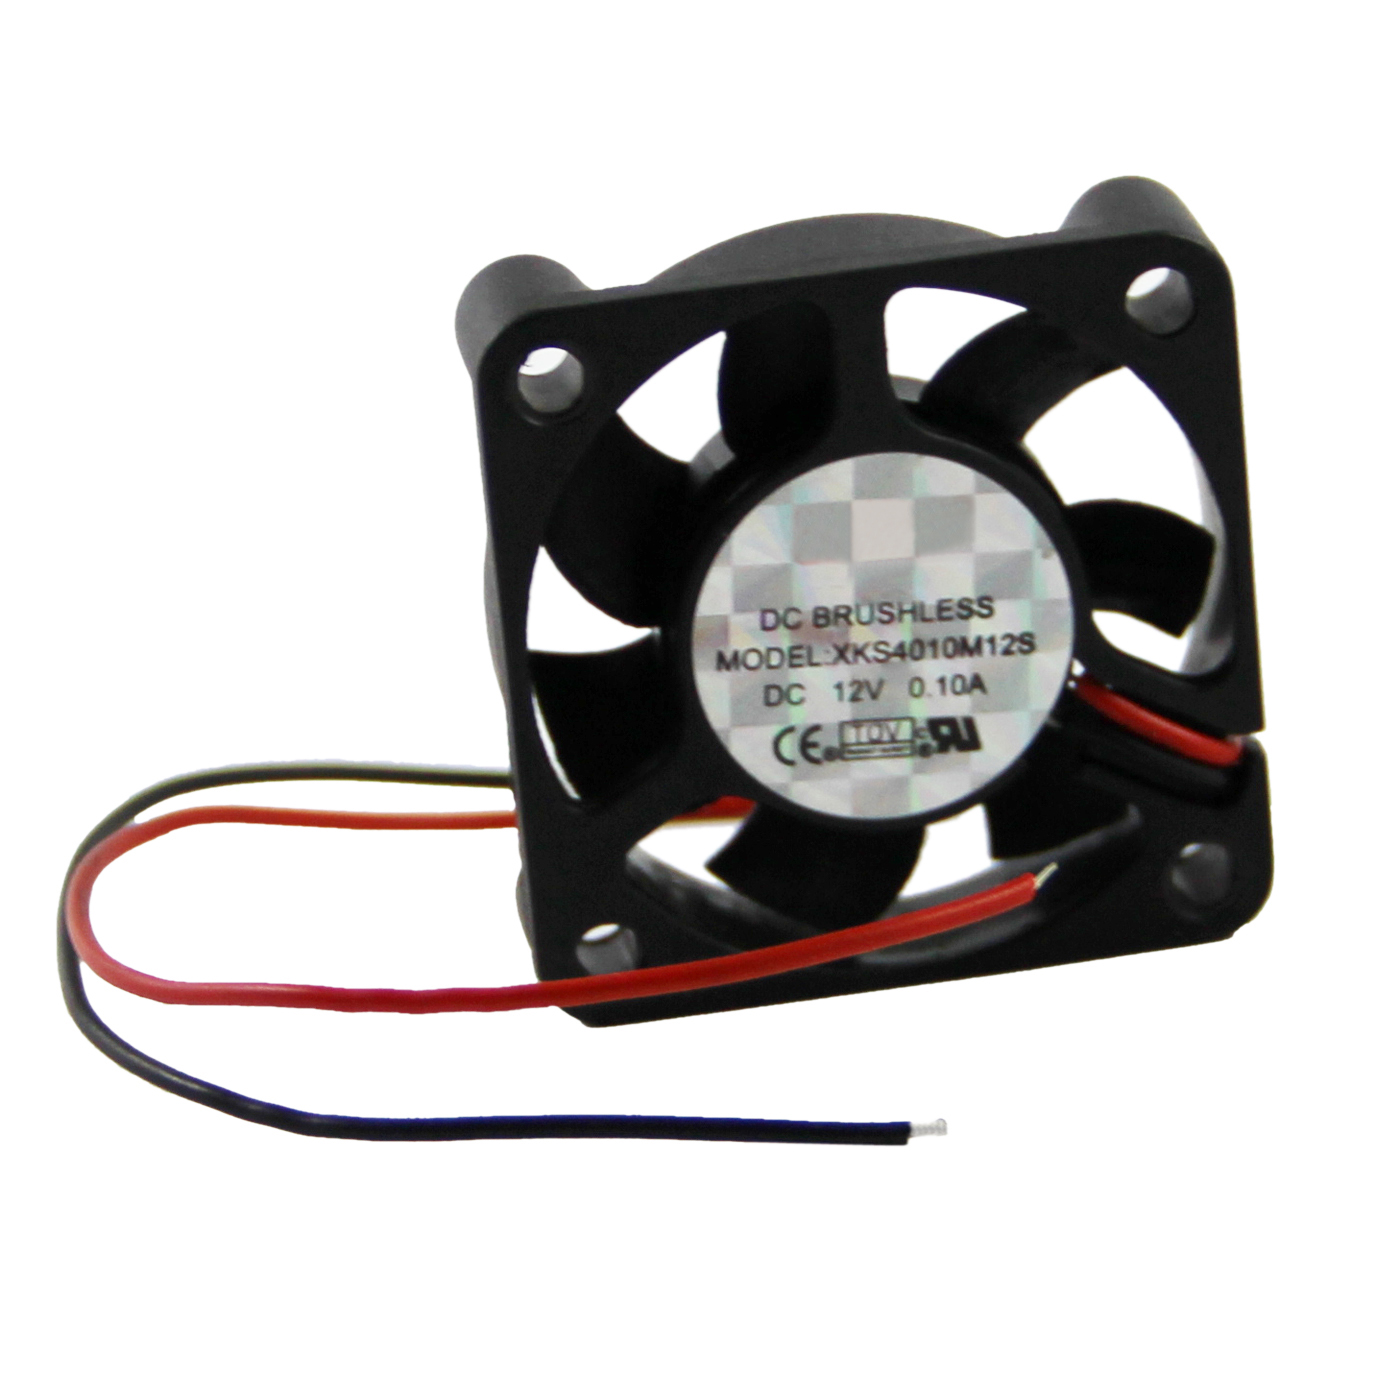 2 Pcs 2 Pin 40mm Square PC Computer Cooler Cooling Fan DC 12V free shipping for sunon kde2406phs2 dc 24v 1 9w 2 wire 2 pin connector 60x60x15mm server square cooling fan